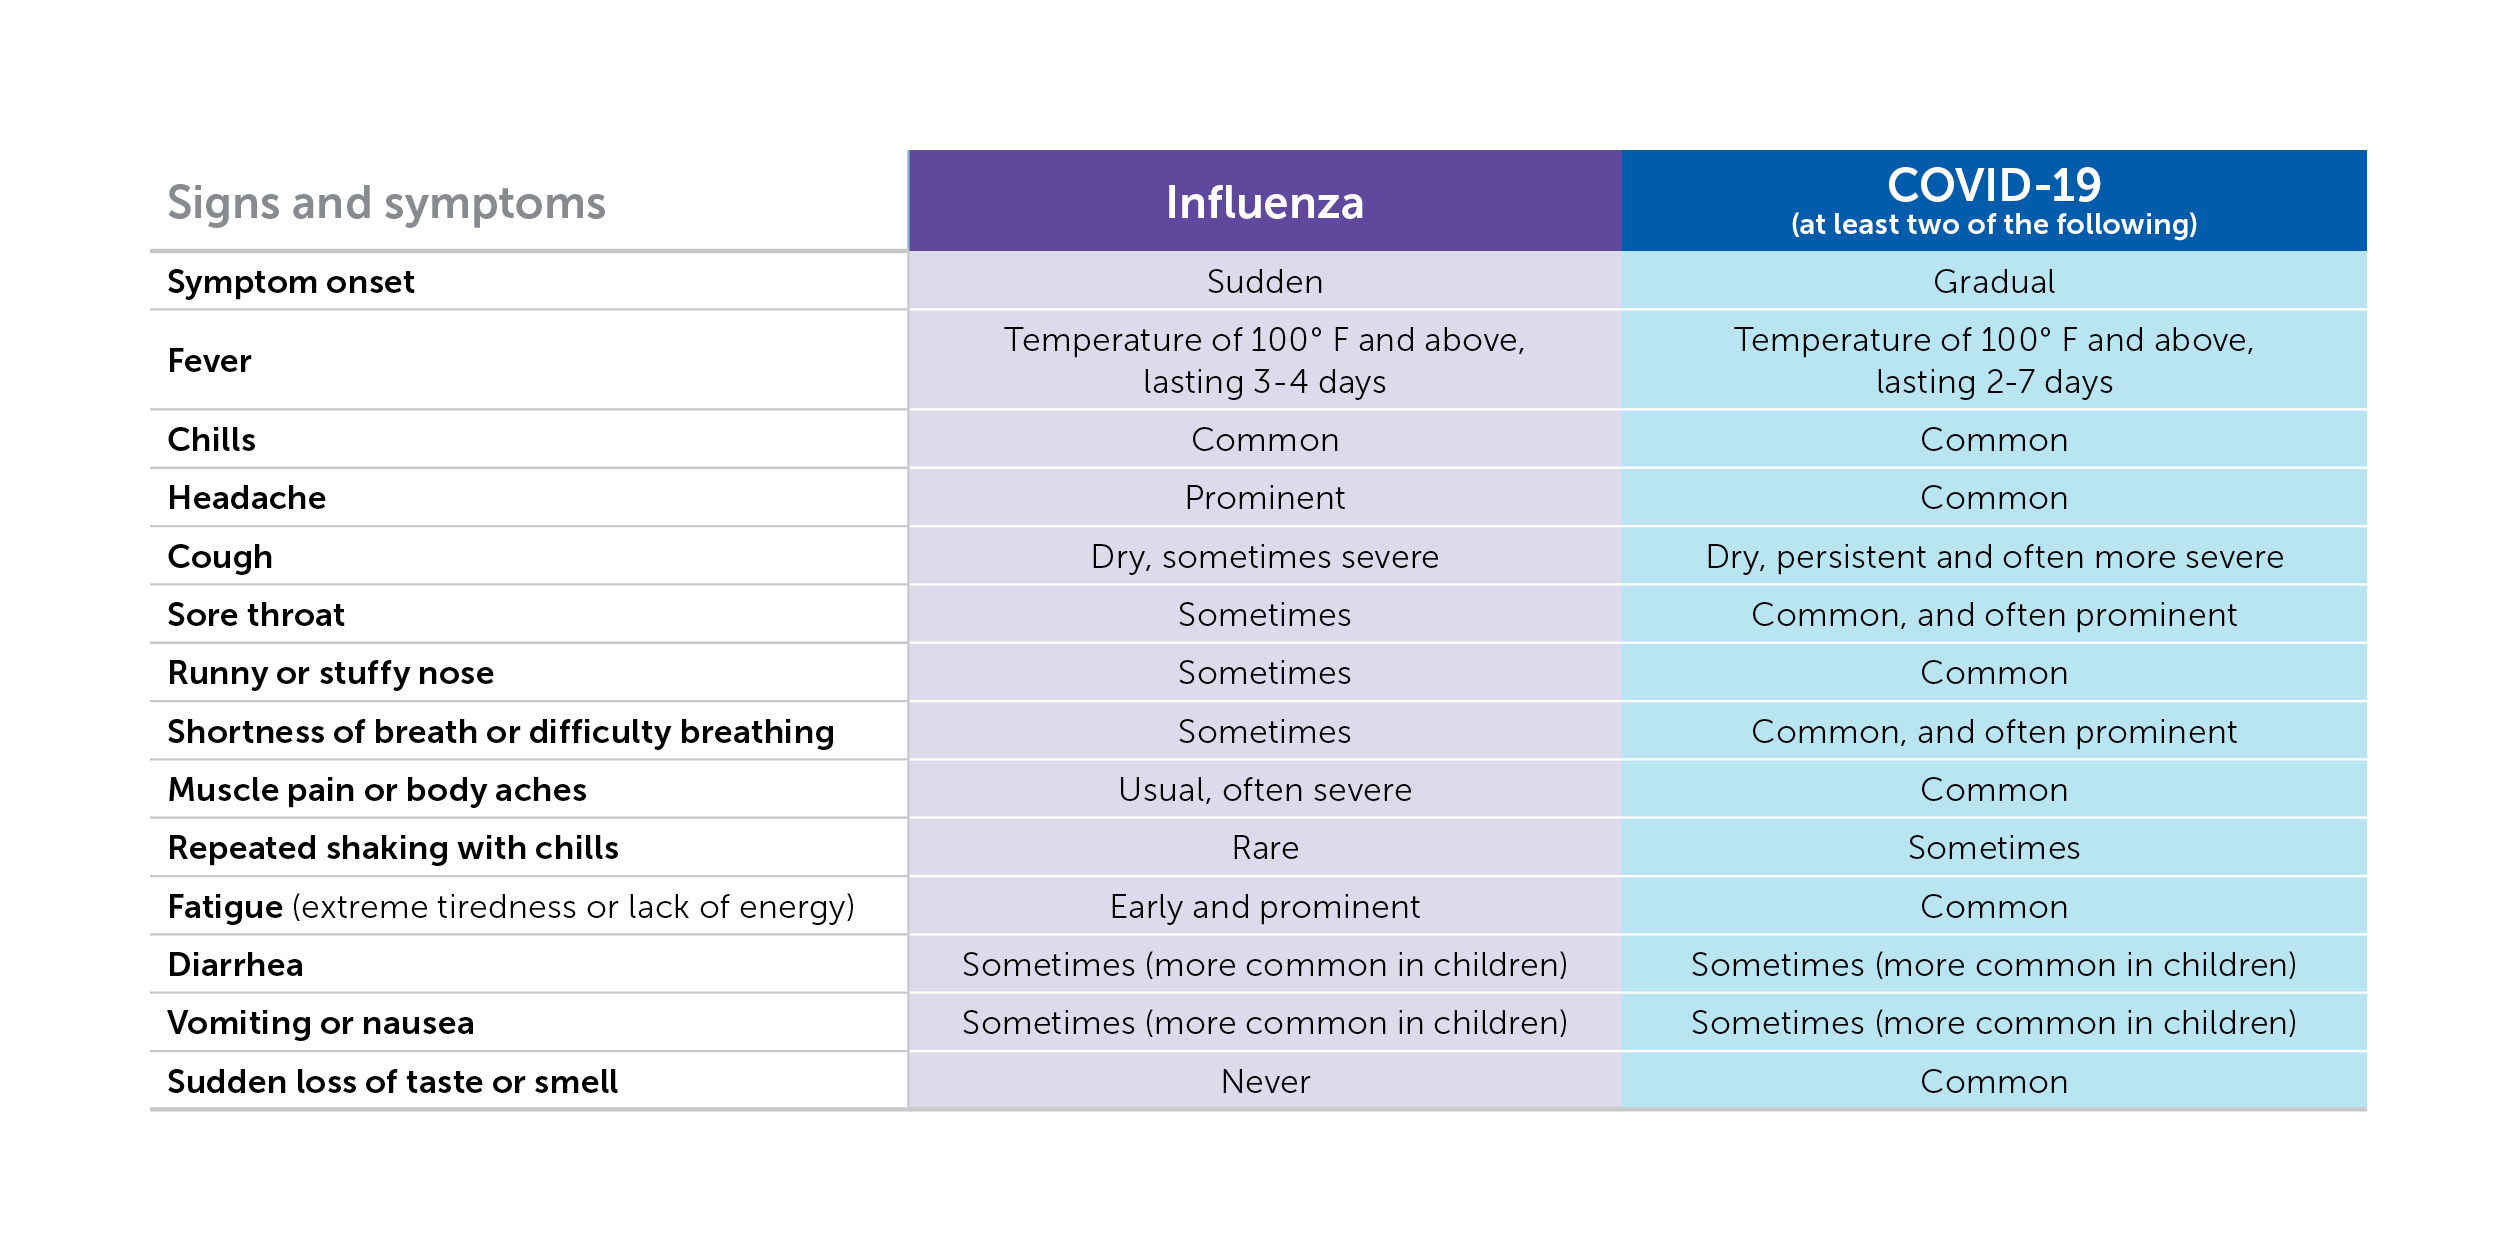 COVID-19 vs flu symptoms chart